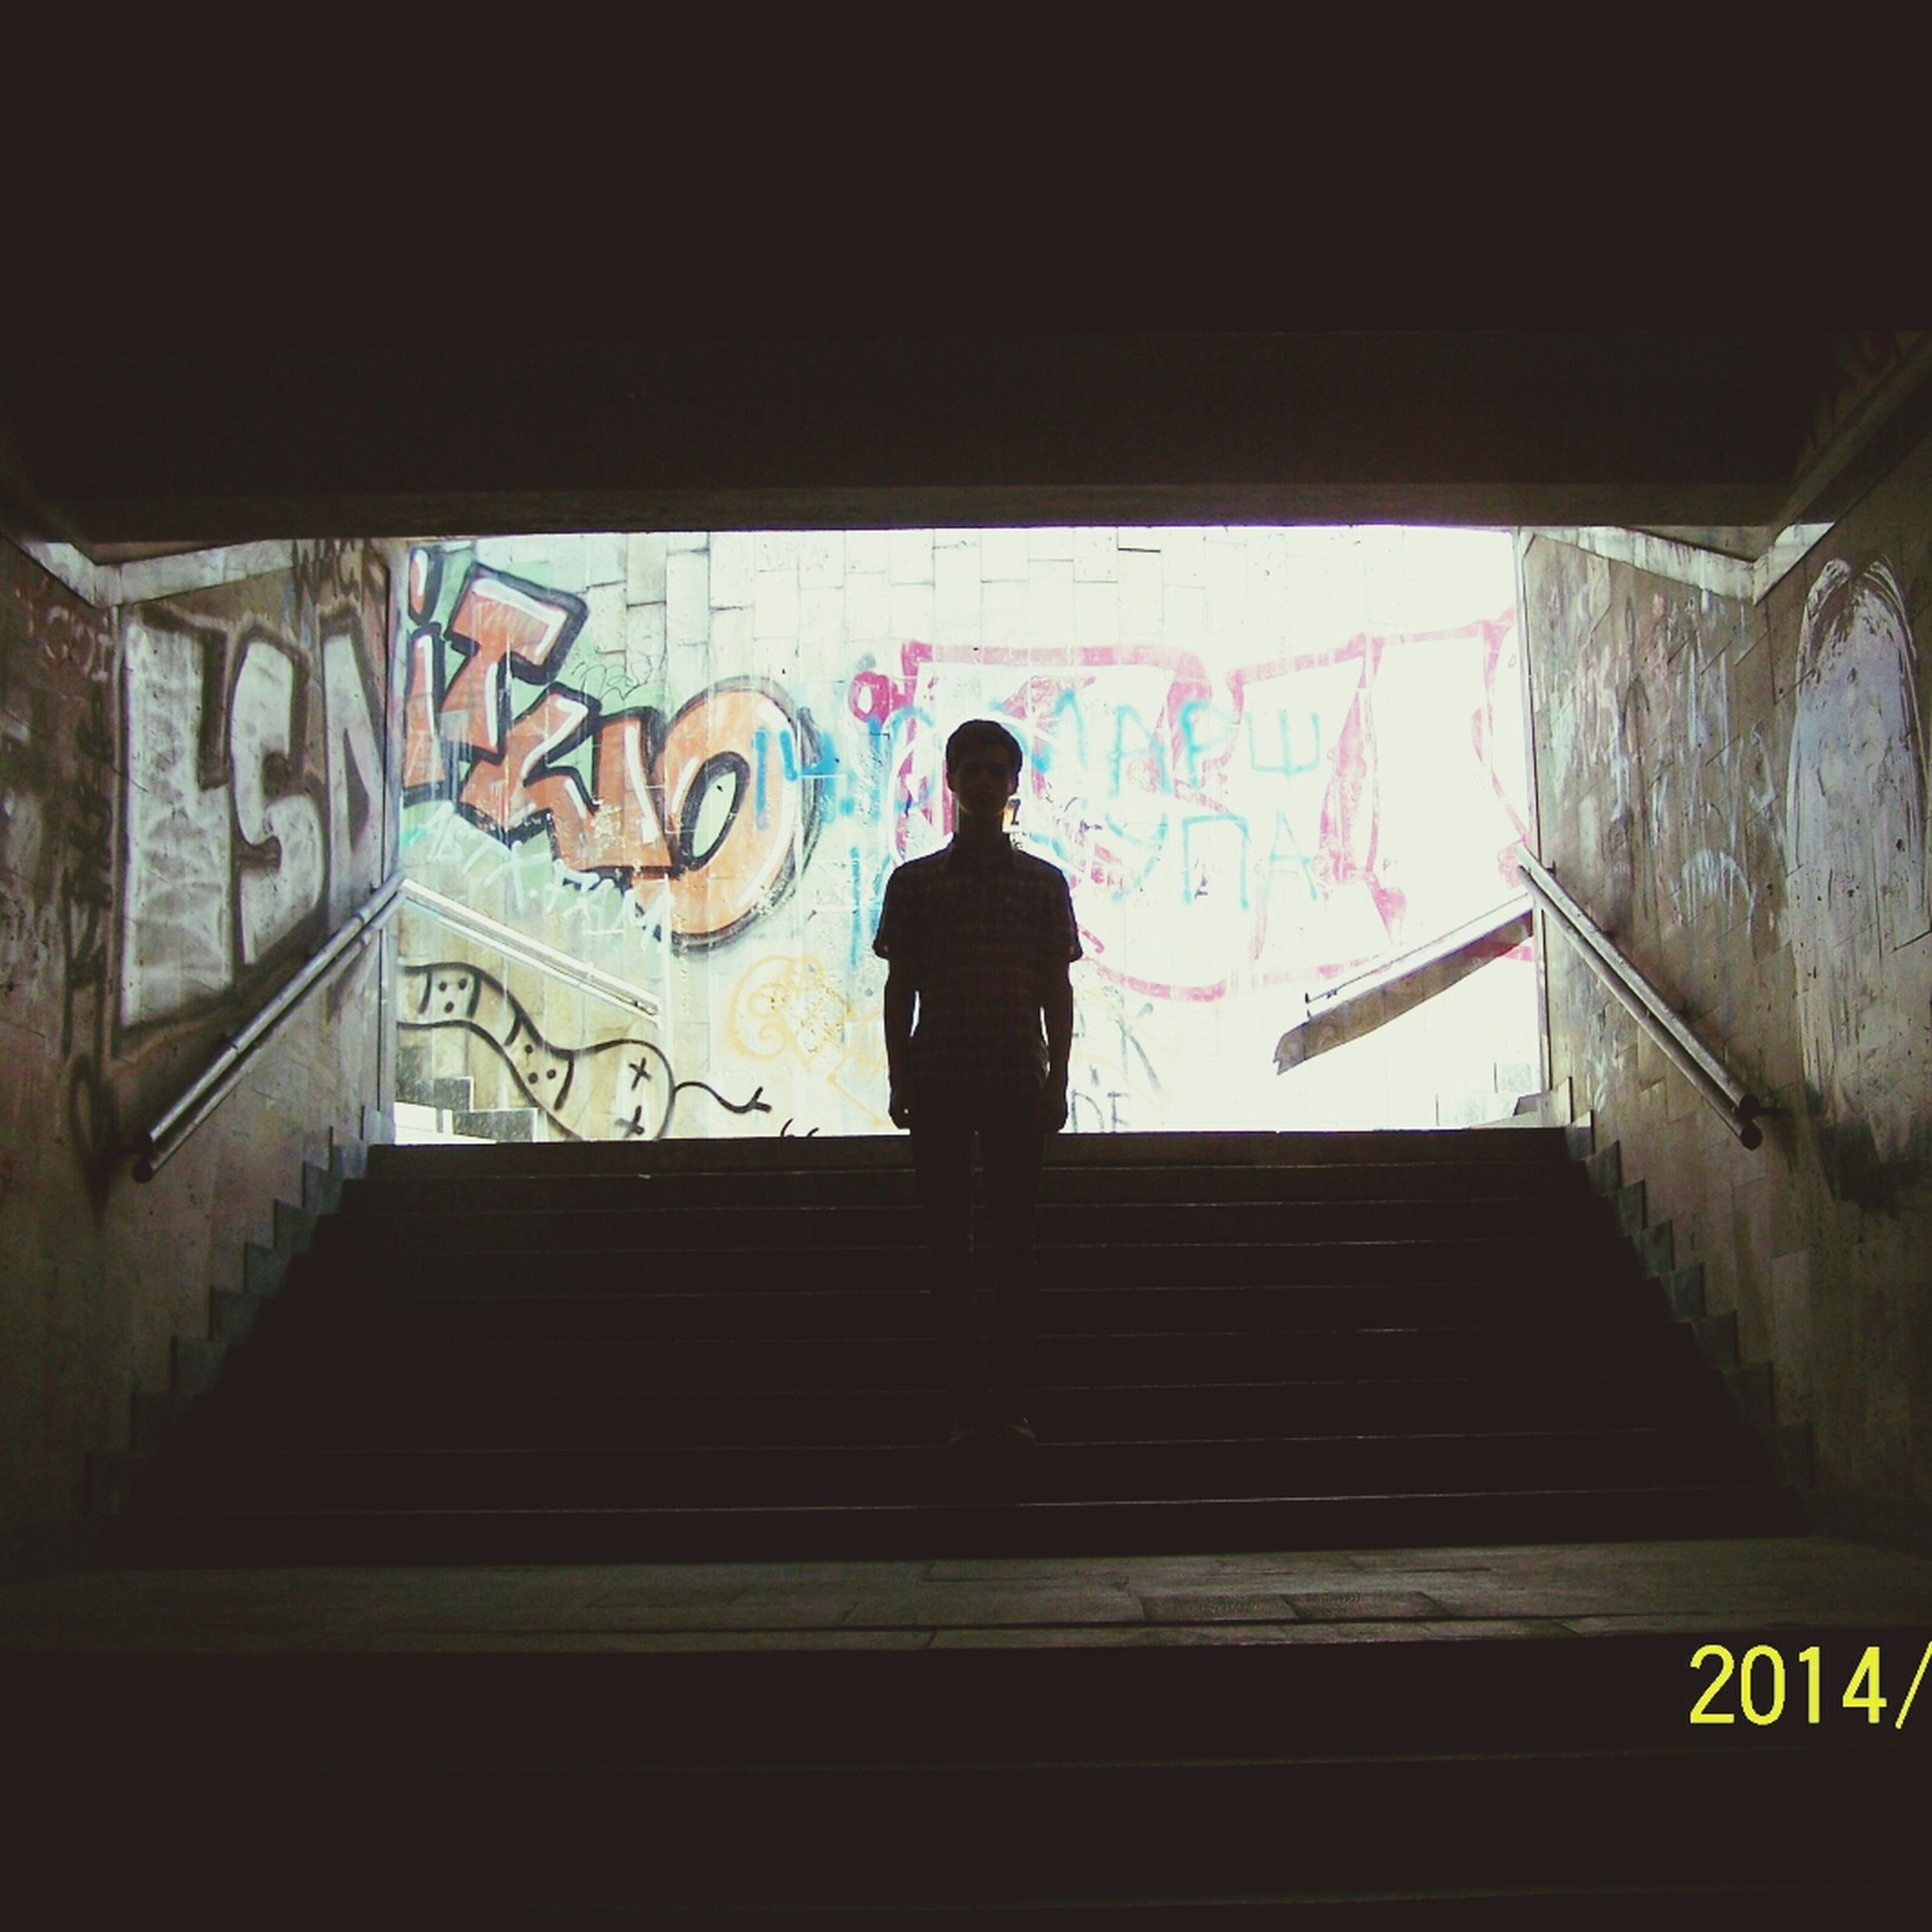 graffiti, text, architecture, built structure, lifestyles, full length, western script, indoors, communication, standing, wall - building feature, rear view, leisure activity, building exterior, men, casual clothing, person, low angle view